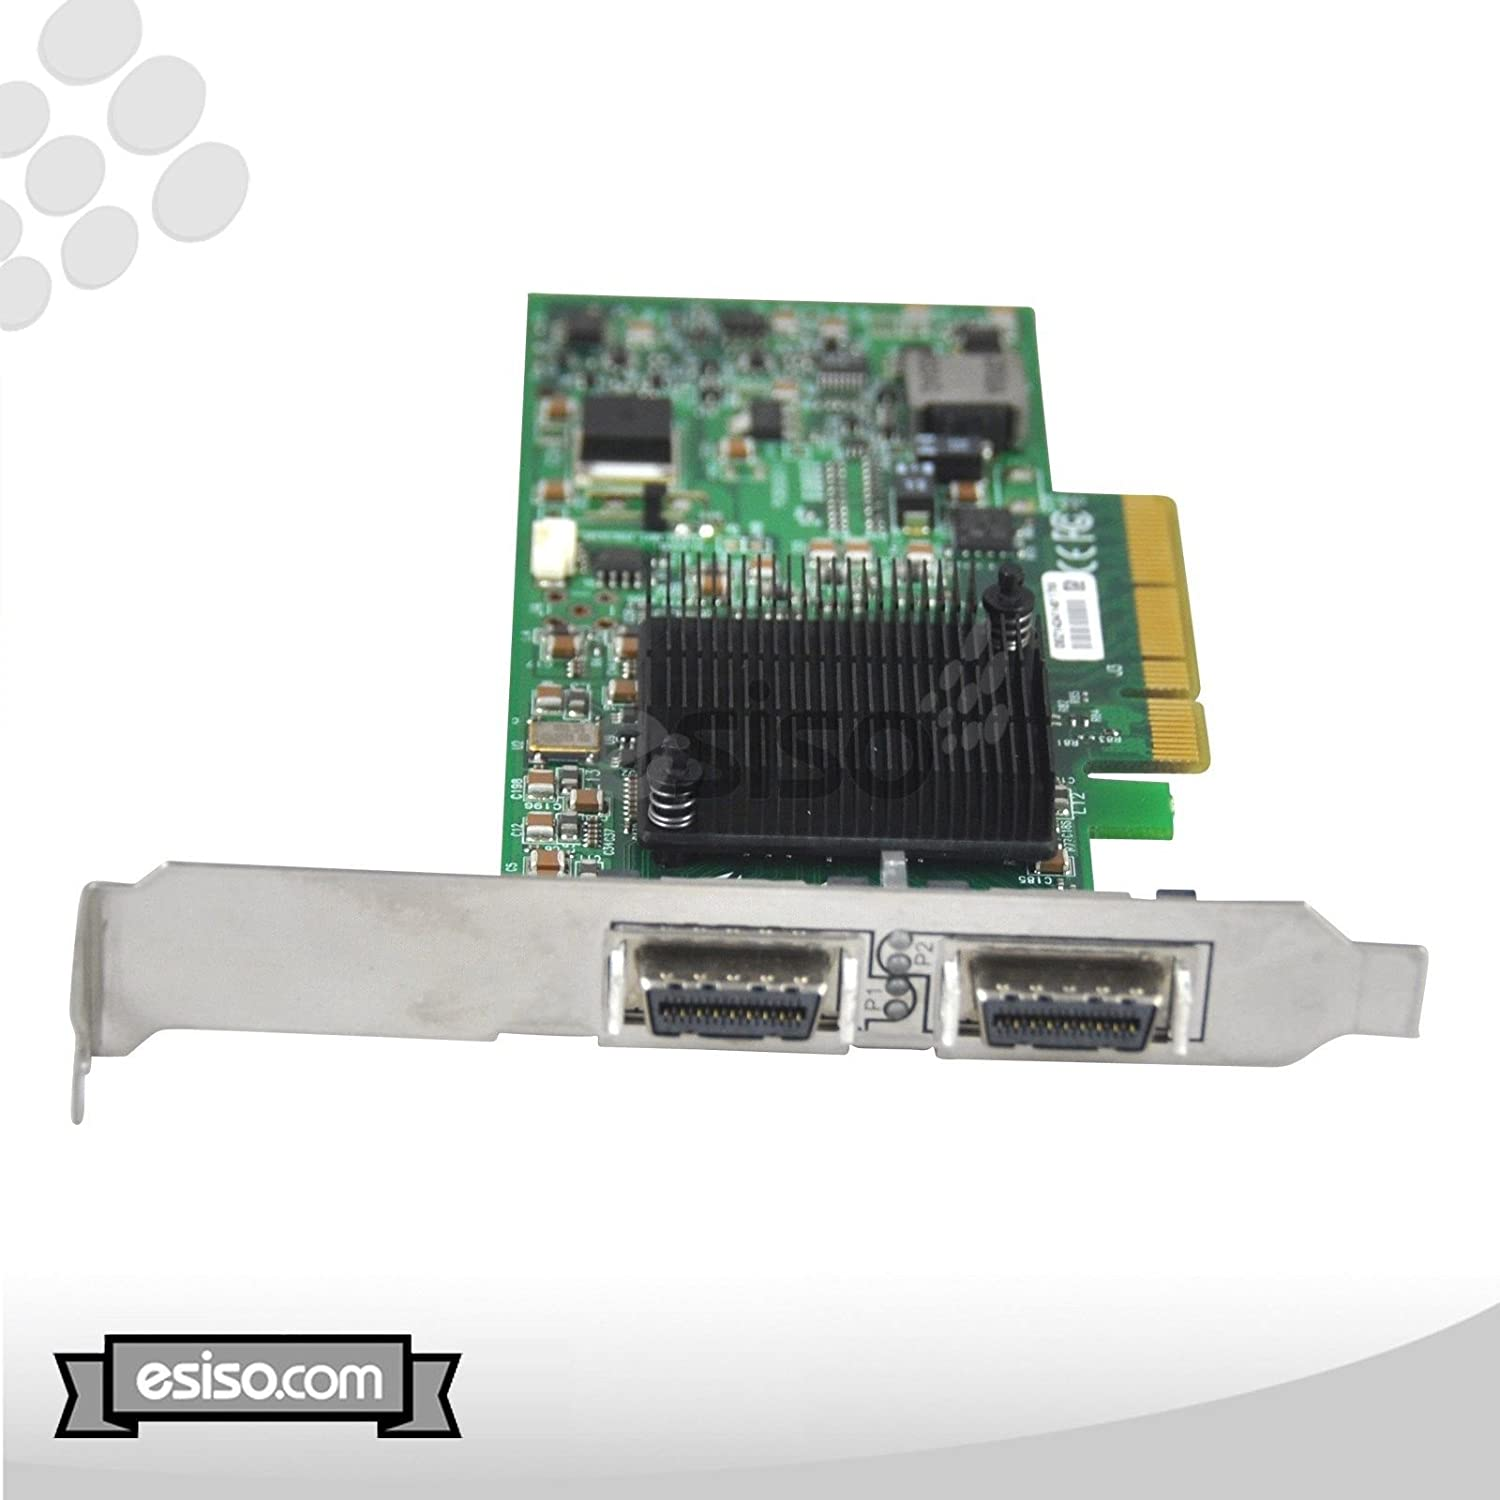 Mellanox MHGA28-2SC HCA Card Drivers Windows XP